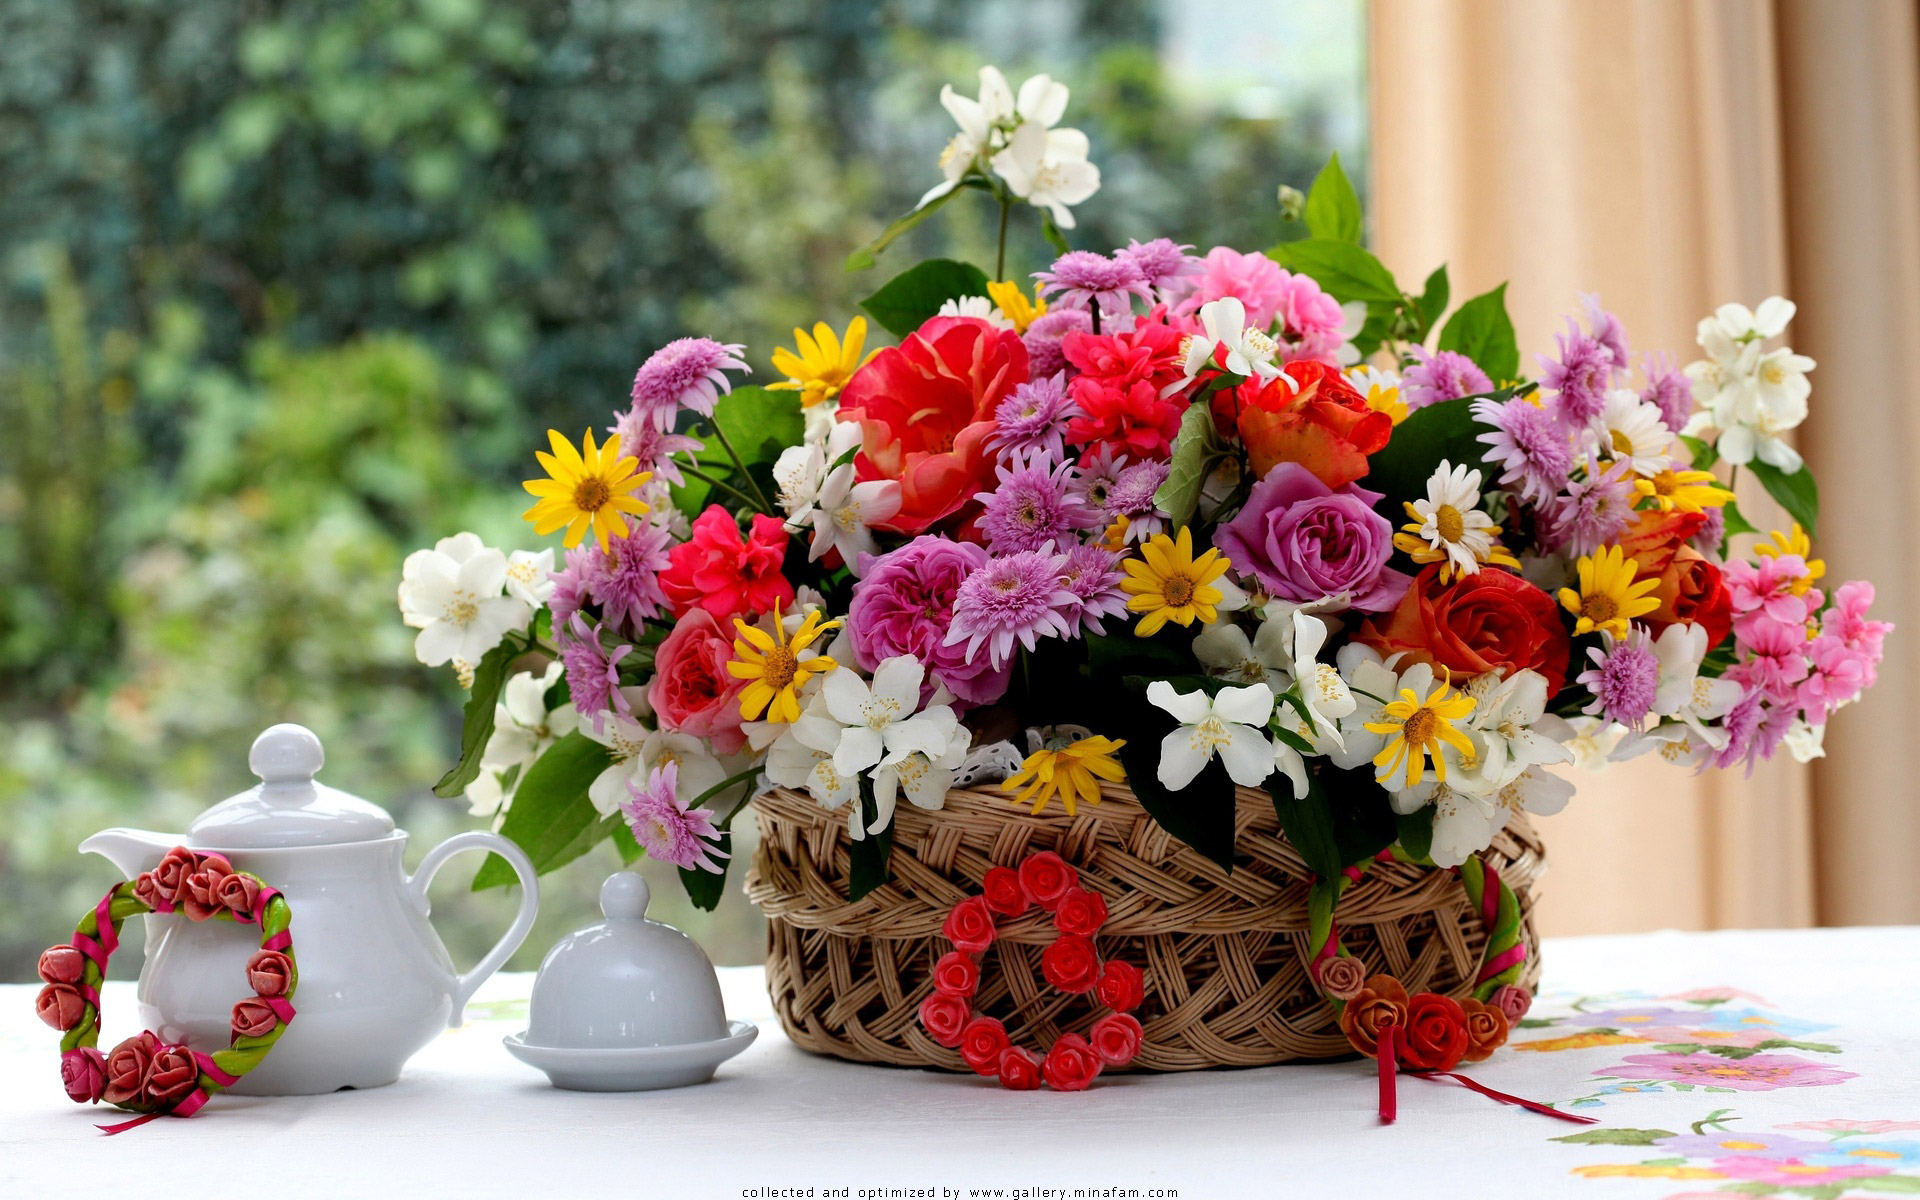 flower arrangements wallpapers and nature wallpapers of charge 1920x1200